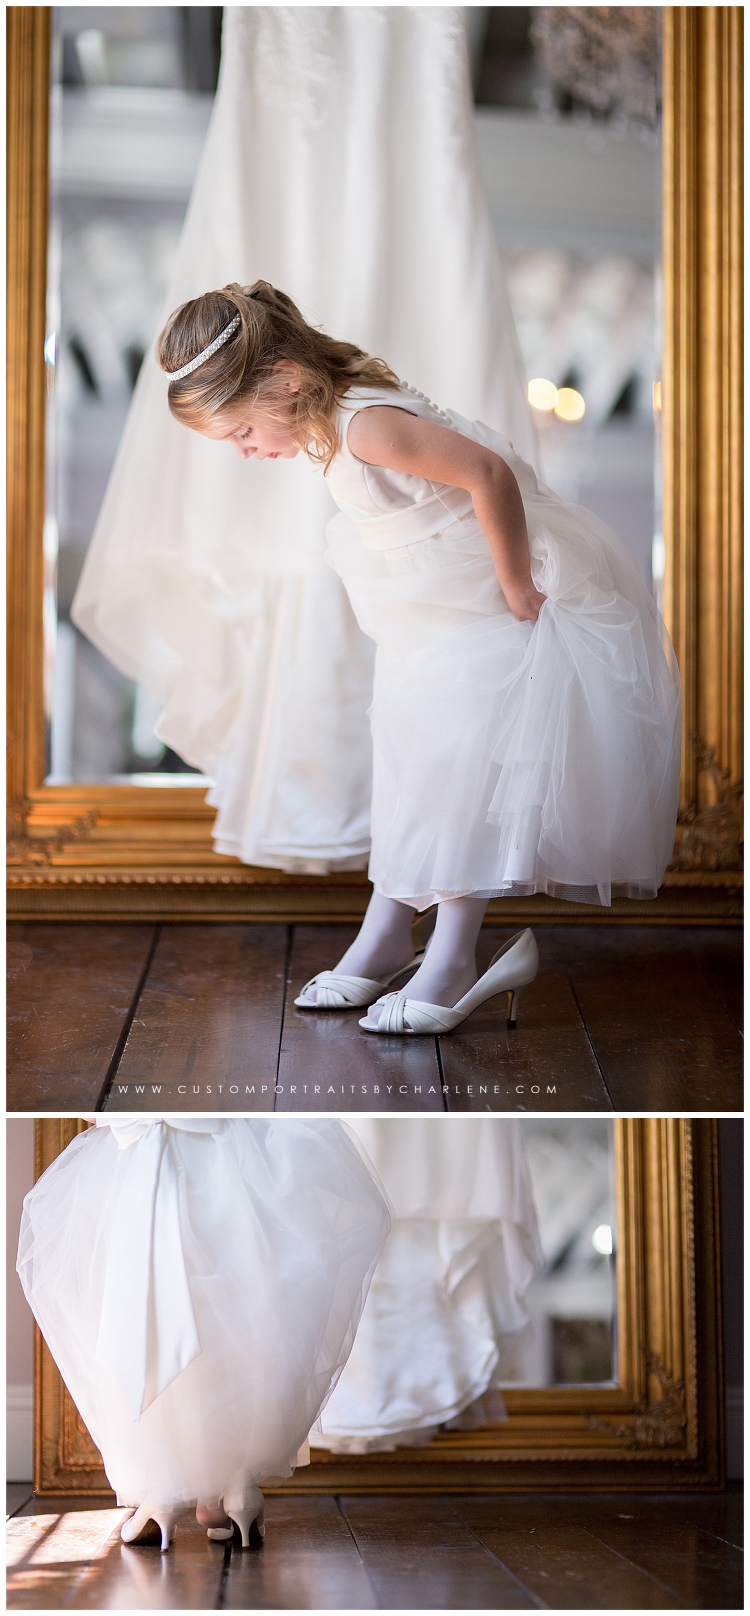 pittsburgh-wedding-photographer-orchard-hill-church-monterey-bay-reception-intimate-pittsburgh-wedding-venue3